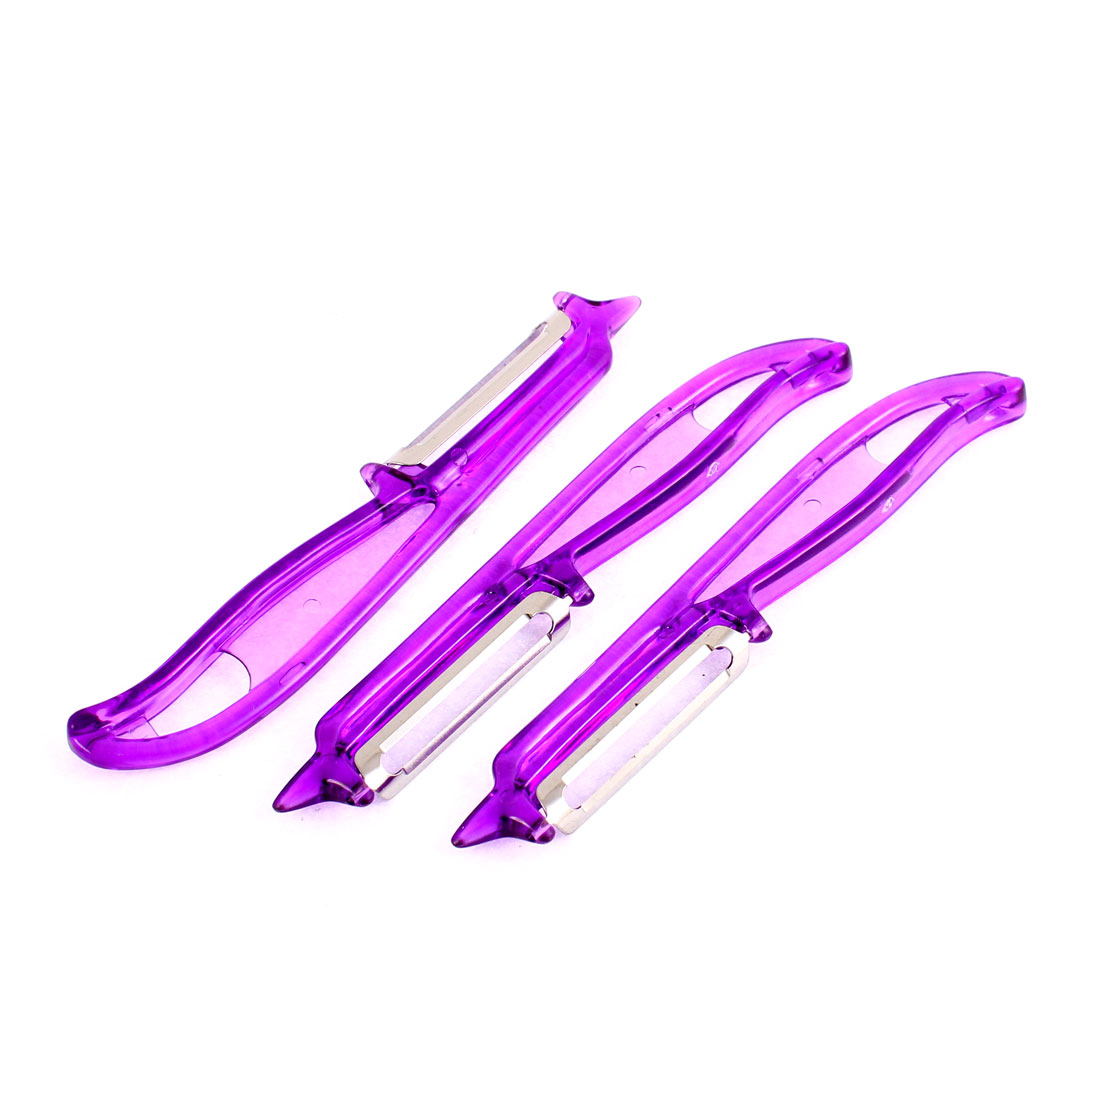 Kitchen Apple Potato Fruit Vegetable Peeler Parer Purple 3Pcs